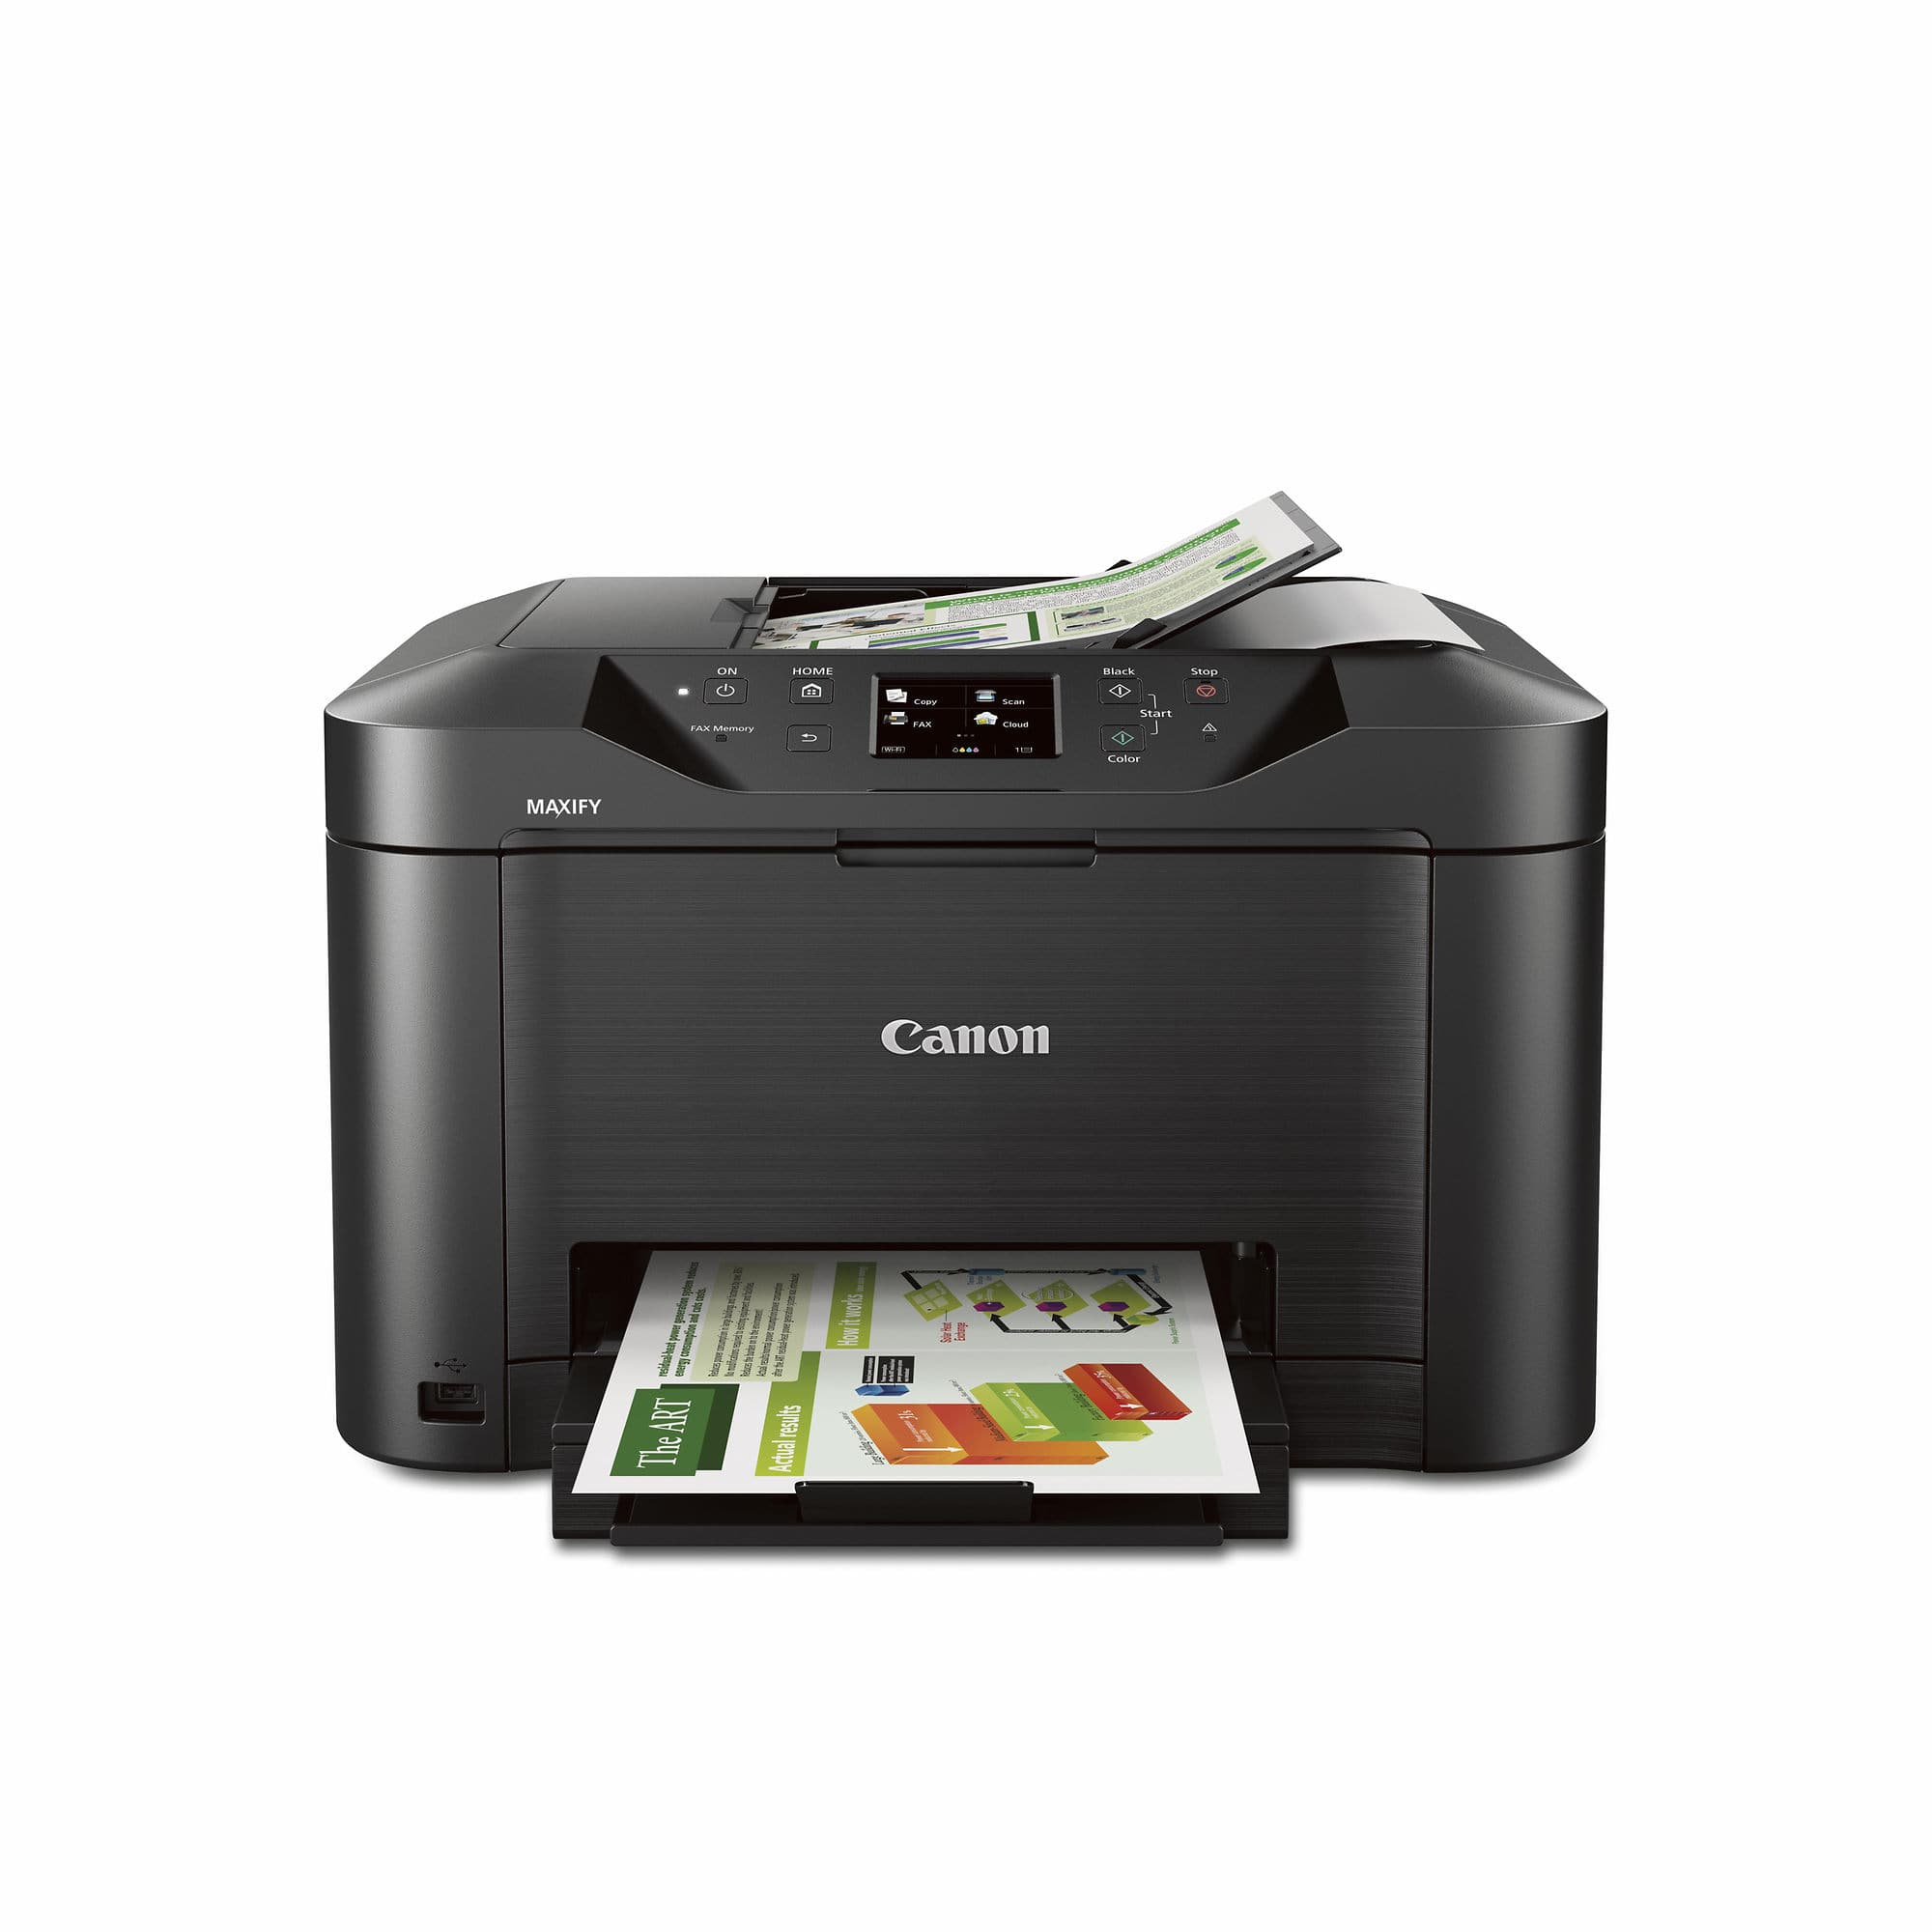 Canon MAXIFY MB5020 All-in-One Wireless Printer $69.99 with free shipping